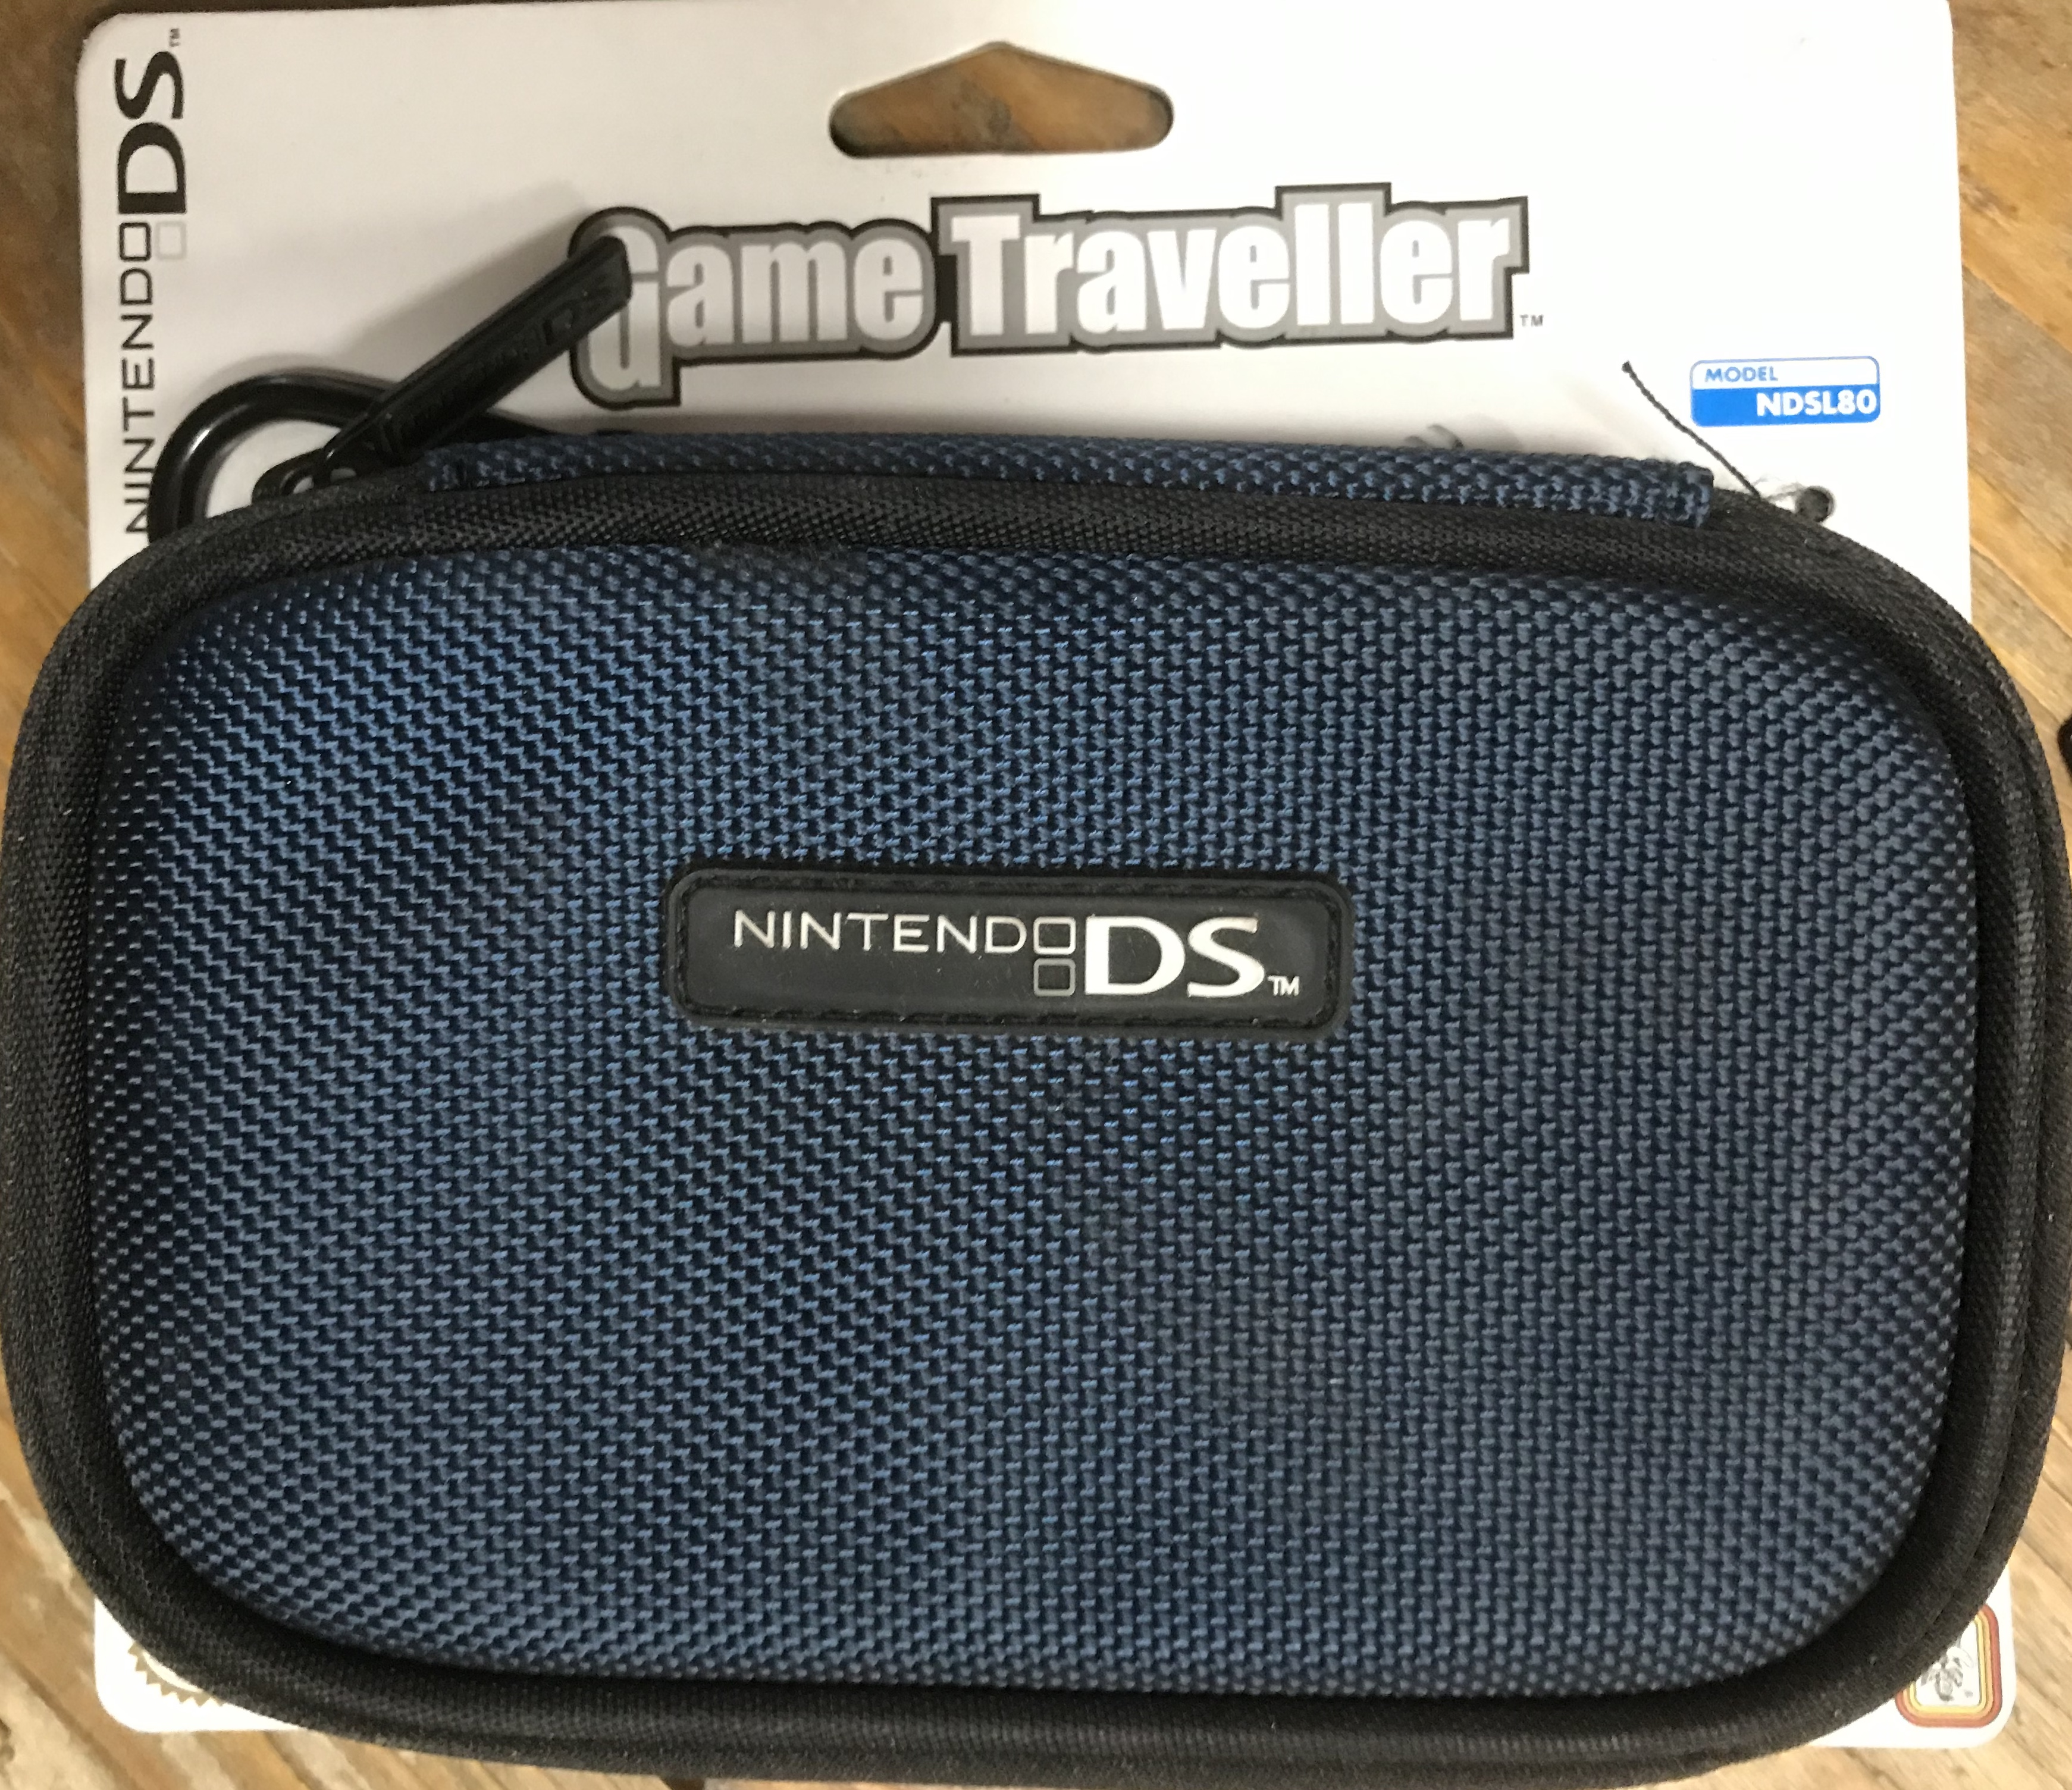 Nintendo DS Light Carrying Case NDSL 80 (Sötétkék)